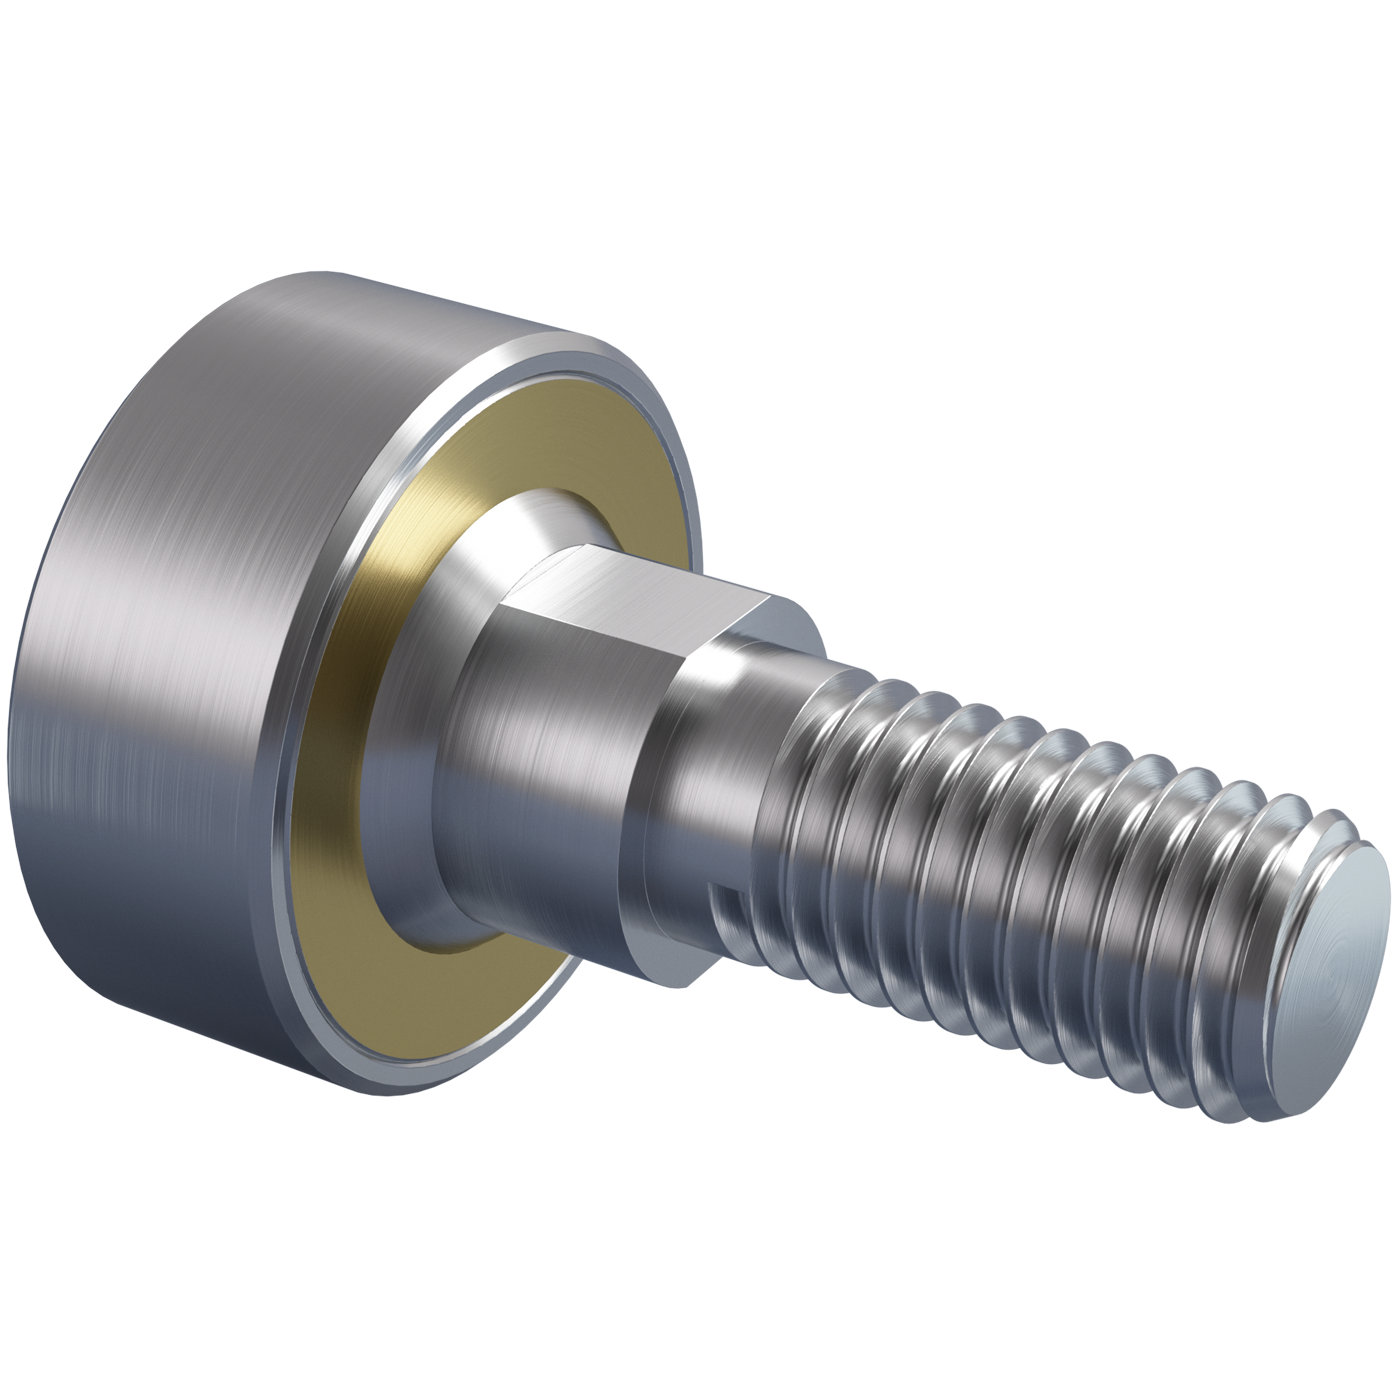 Pivoting bearings DIN ISO 12240-1 (DIN 648) K series maintenance-free version stainless steel with threaded bolt